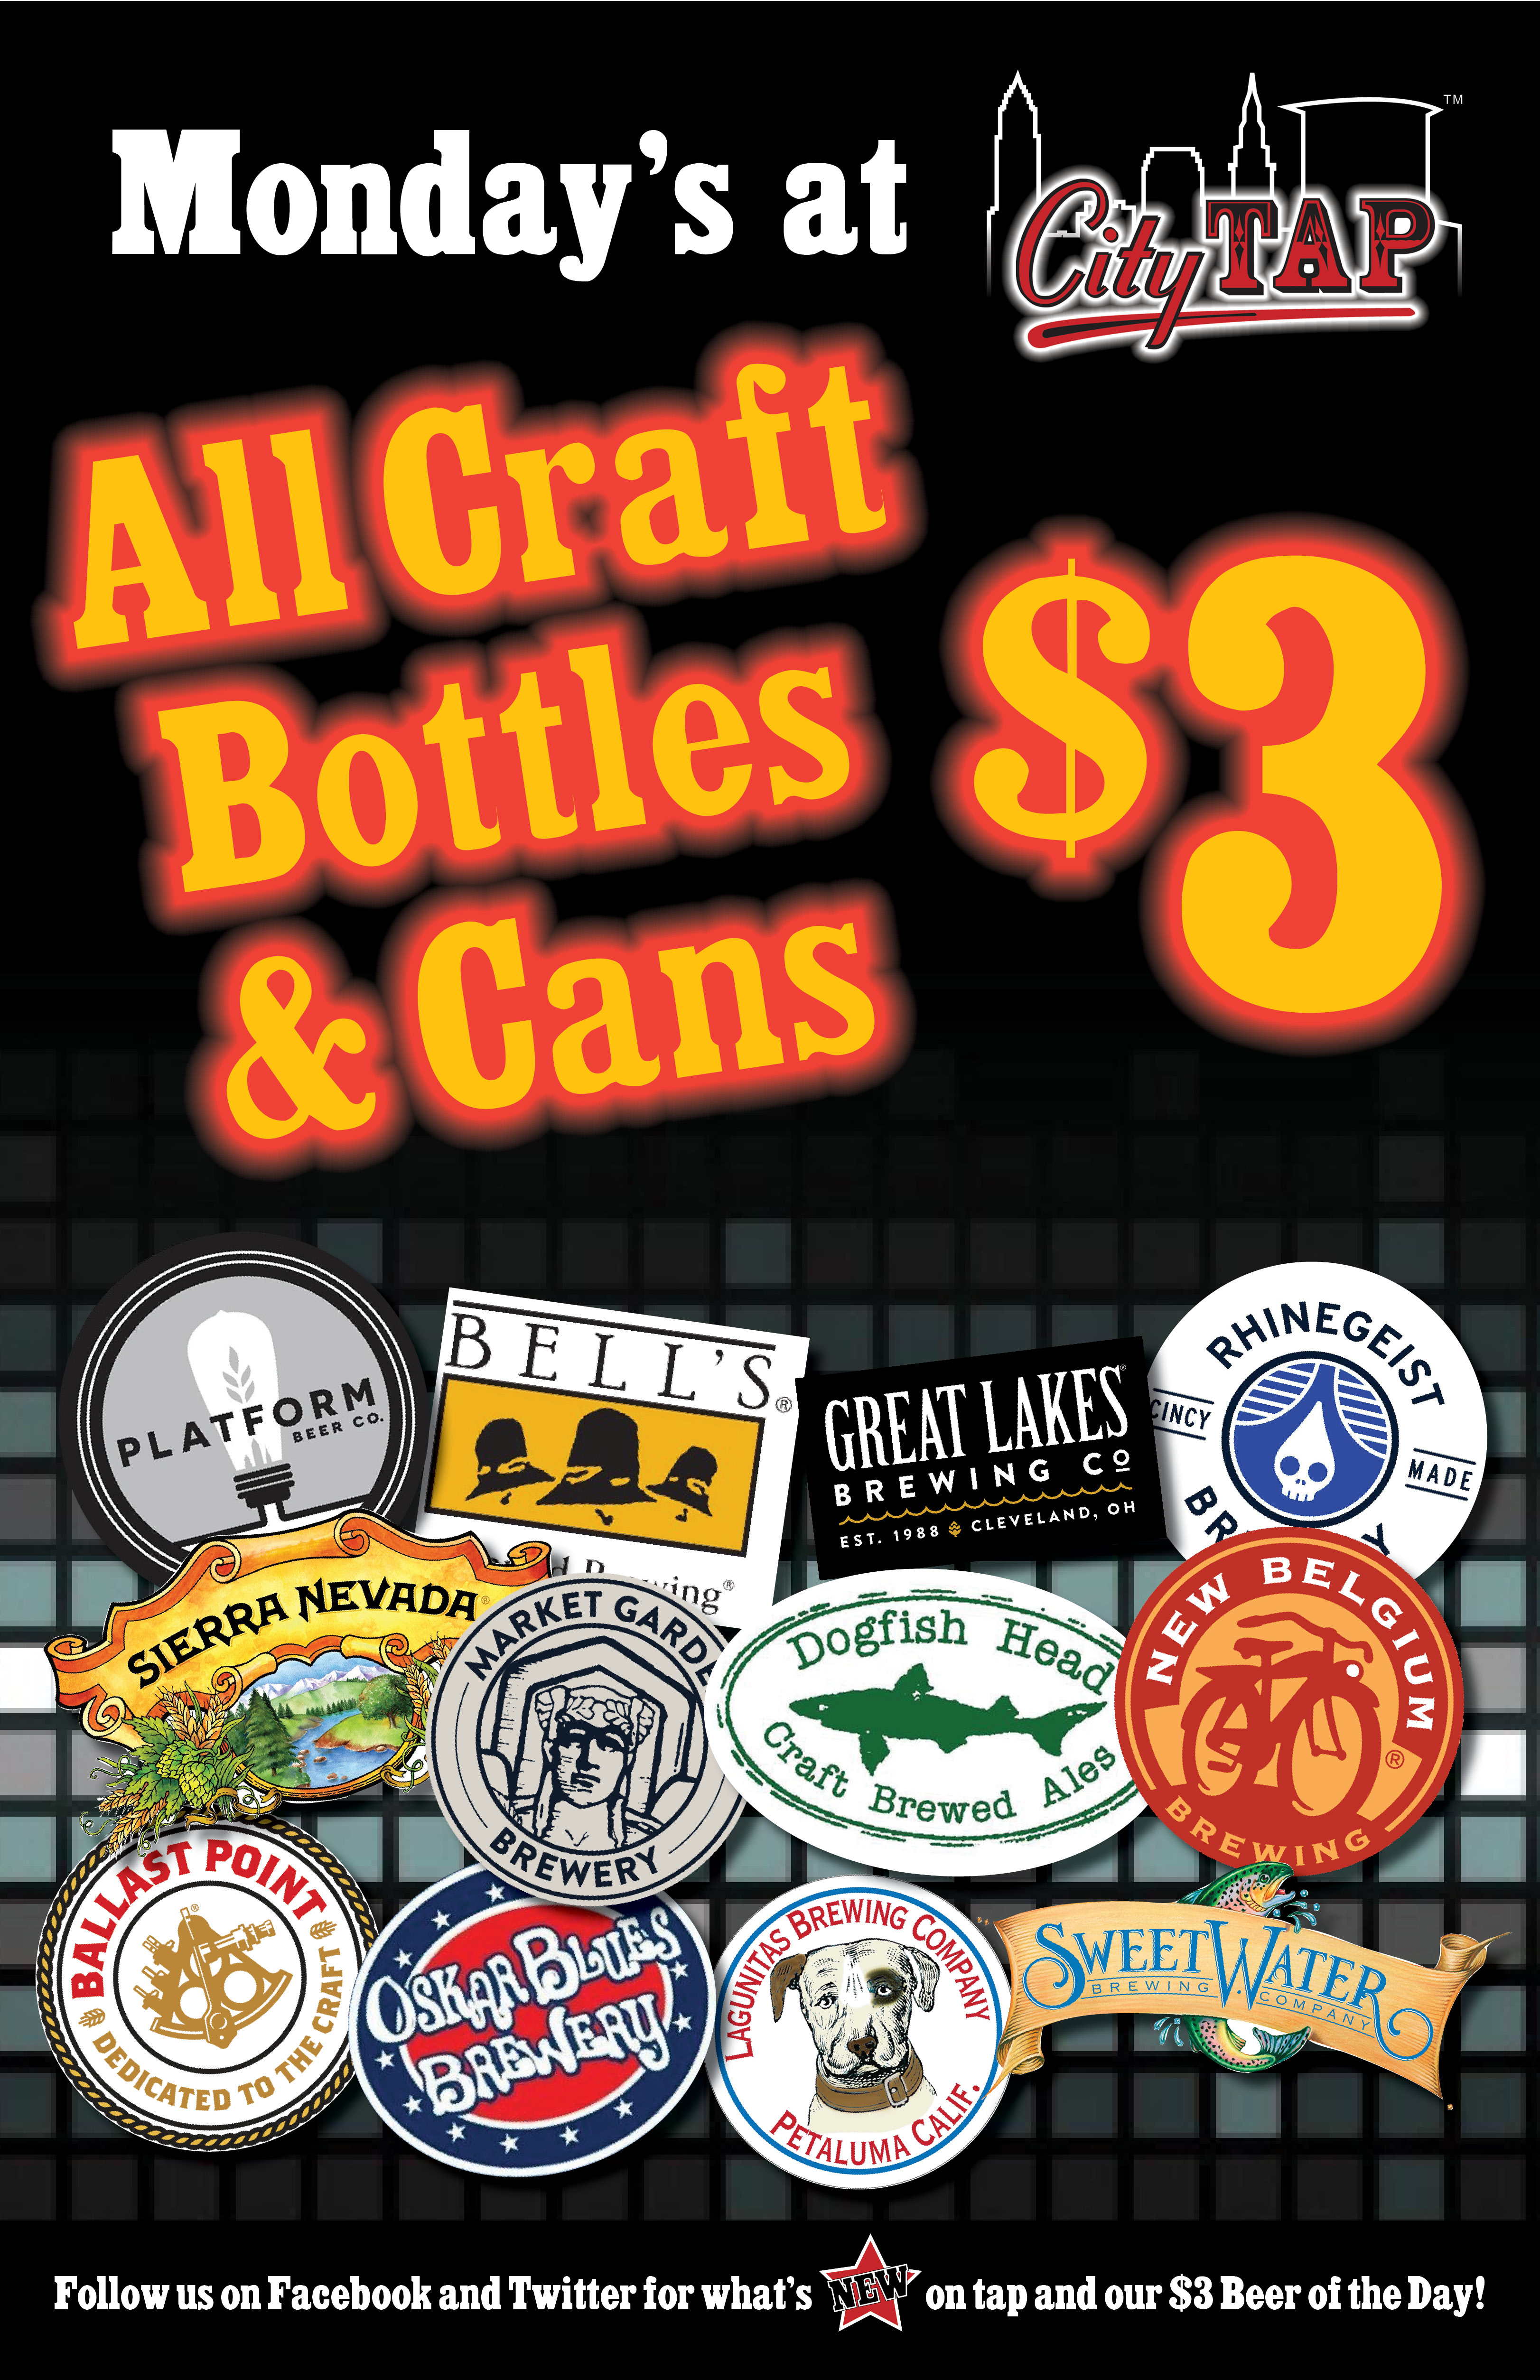 Monday's All Craft Bottles $3